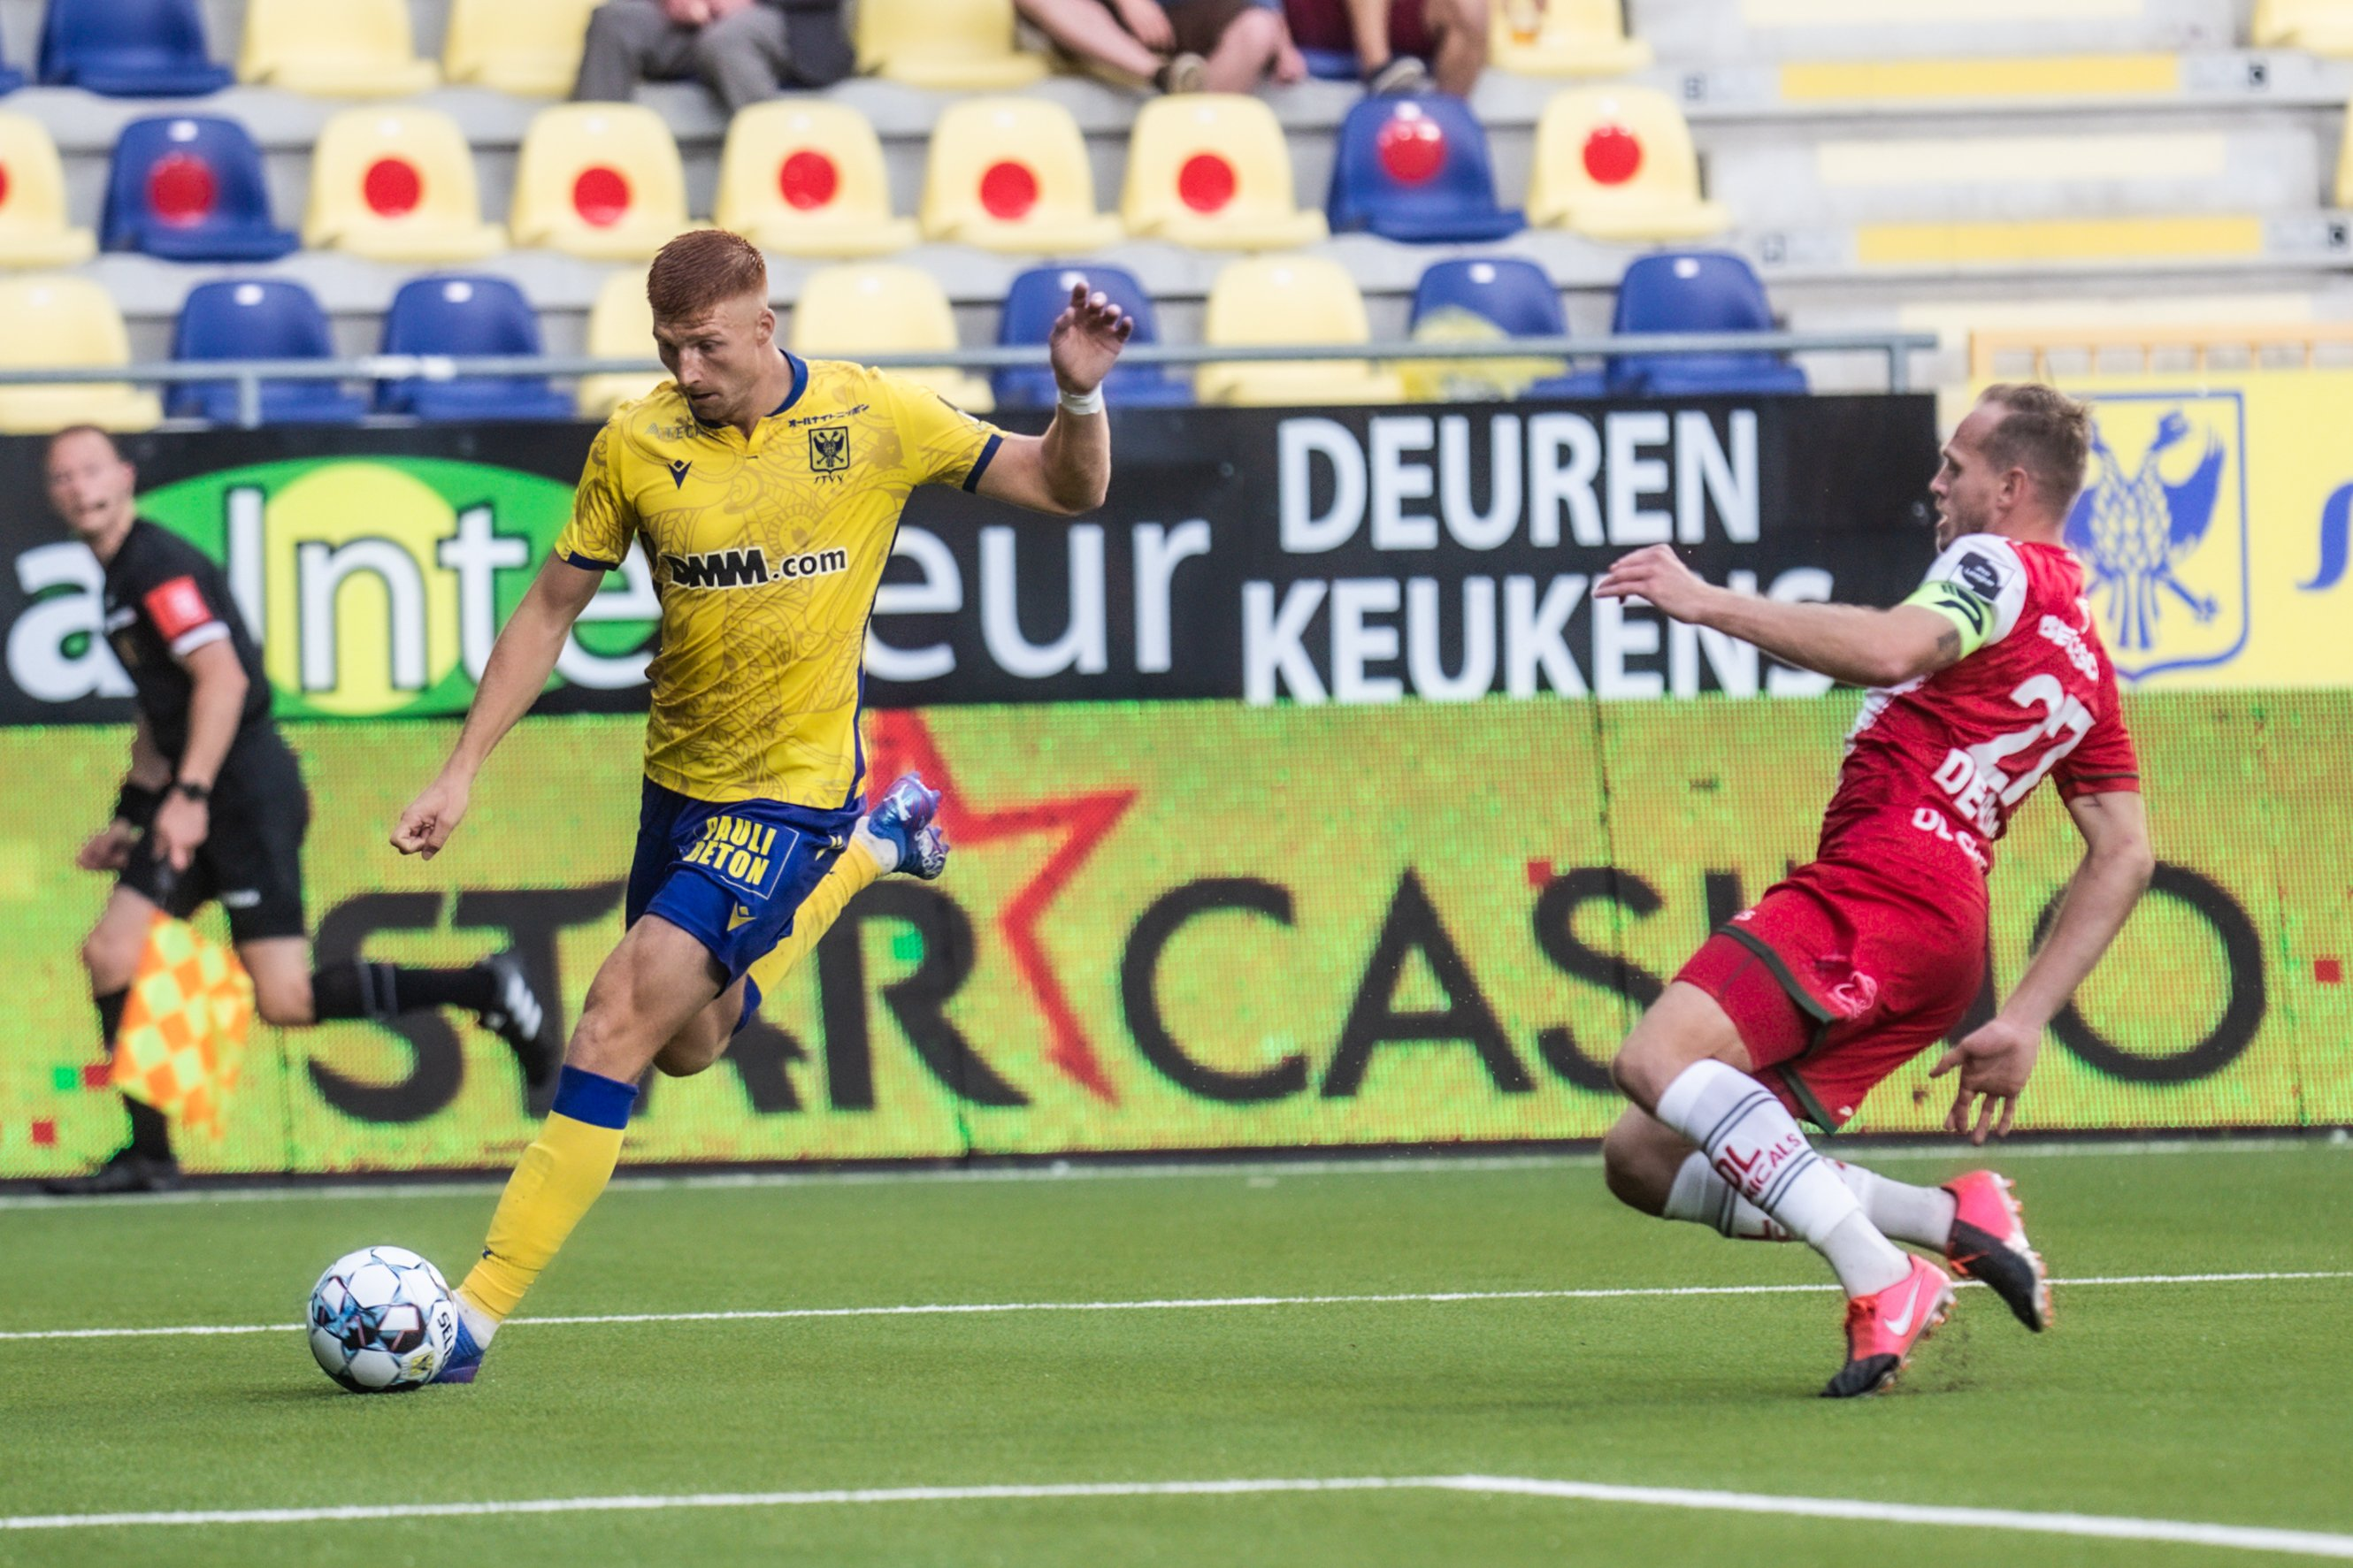 Maximiliano Caufriez leaves STVV for the Russian team Spartak Moscow